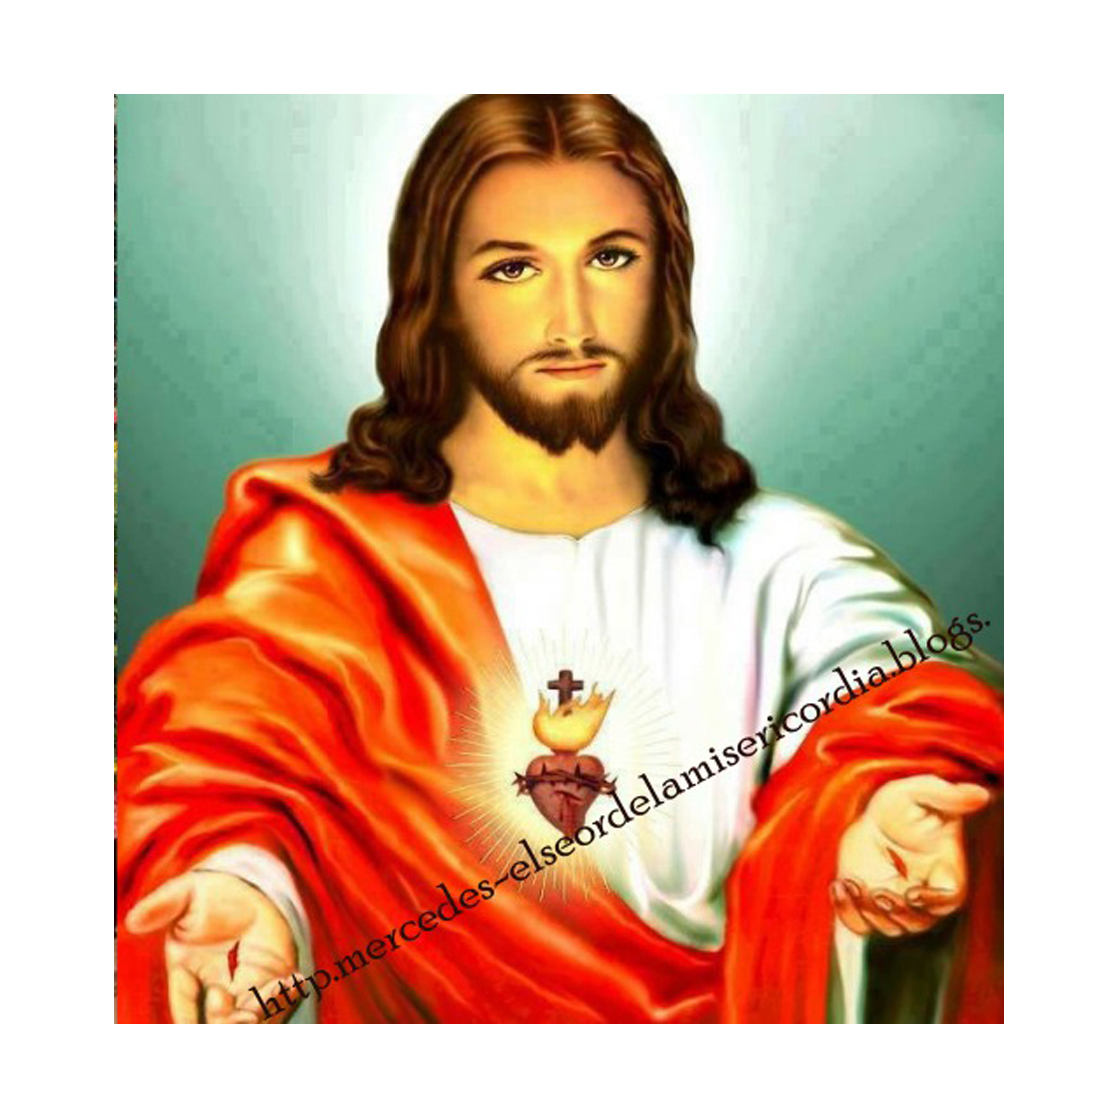 Jesus glitter images pictures M Customize Glitter Graphics, Glitter Text